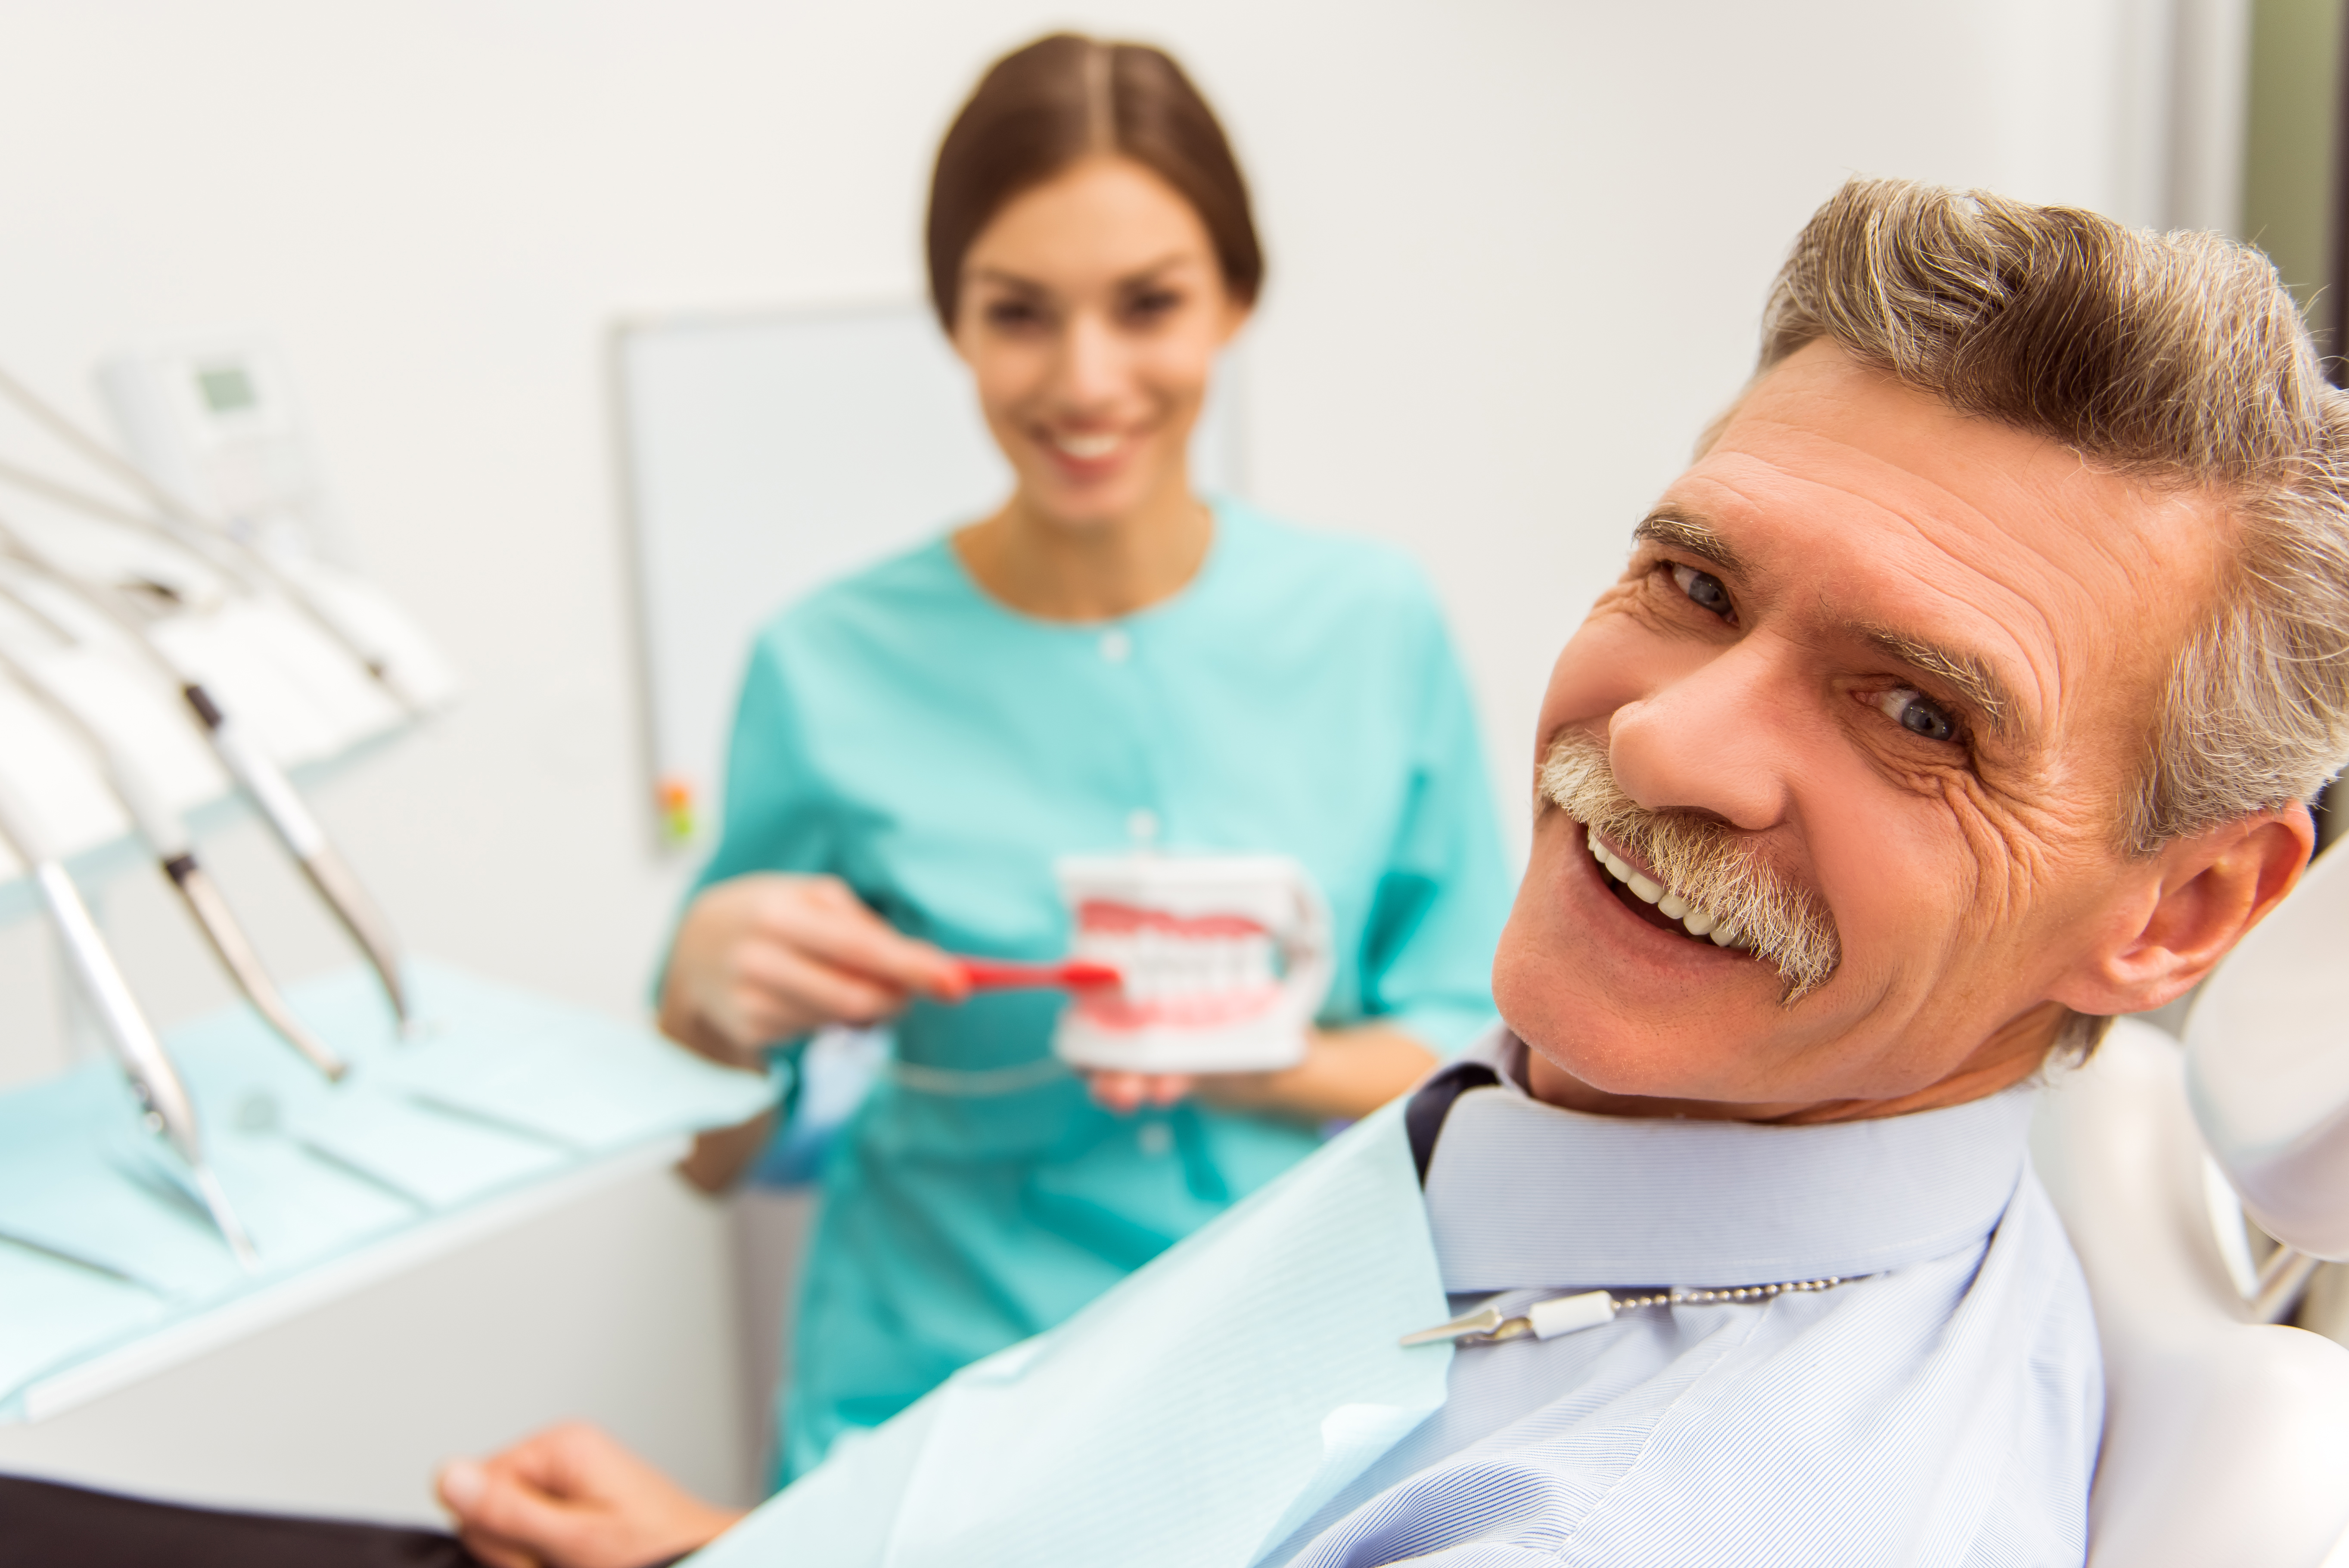 who is a saturday dentist wpb?